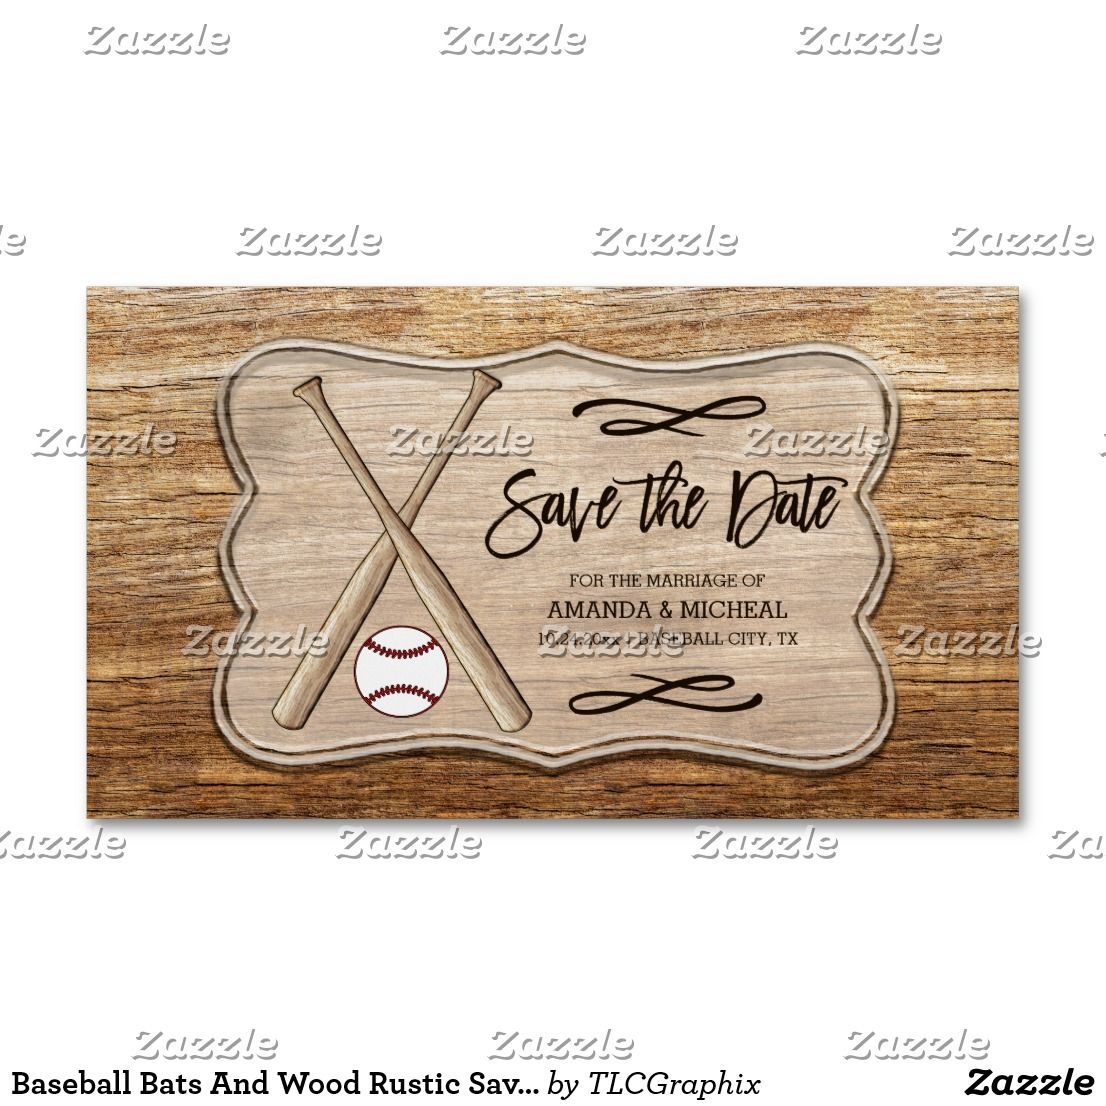 Baseball Bats And Wood Rustic Save The Date Business Card Magnet